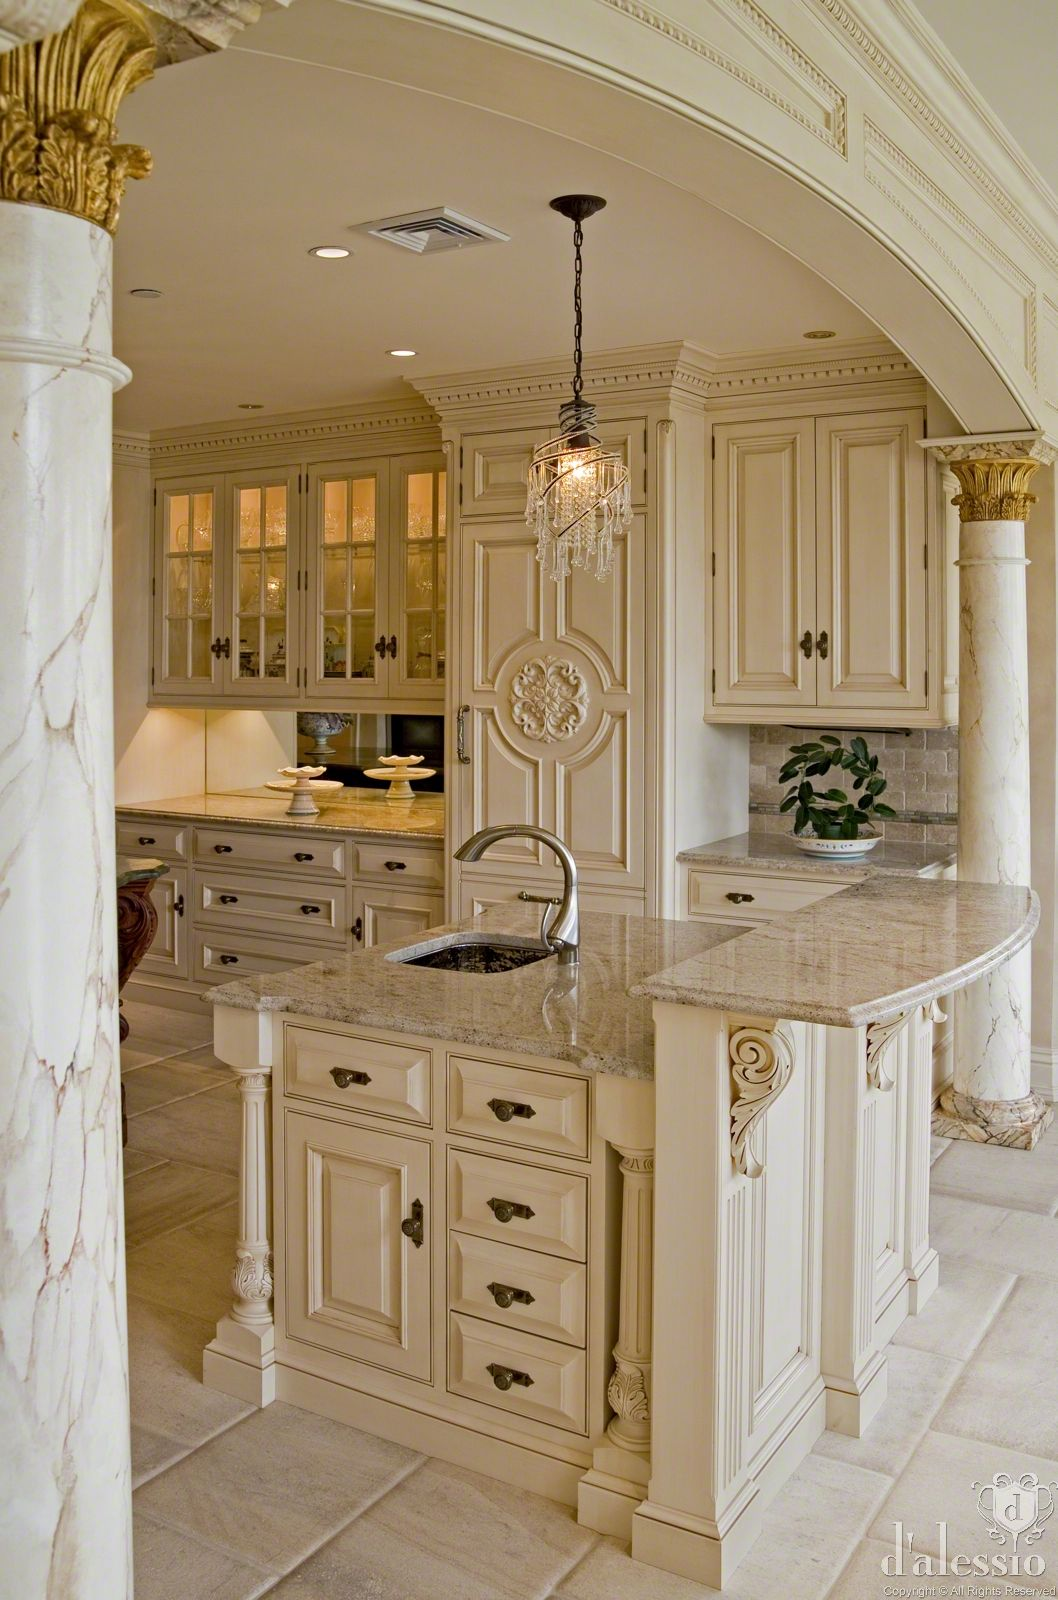 How To Make Creative And Userful Kitchen Decoration In Budget 6 Unique European Kitchen Designs Decorating Design